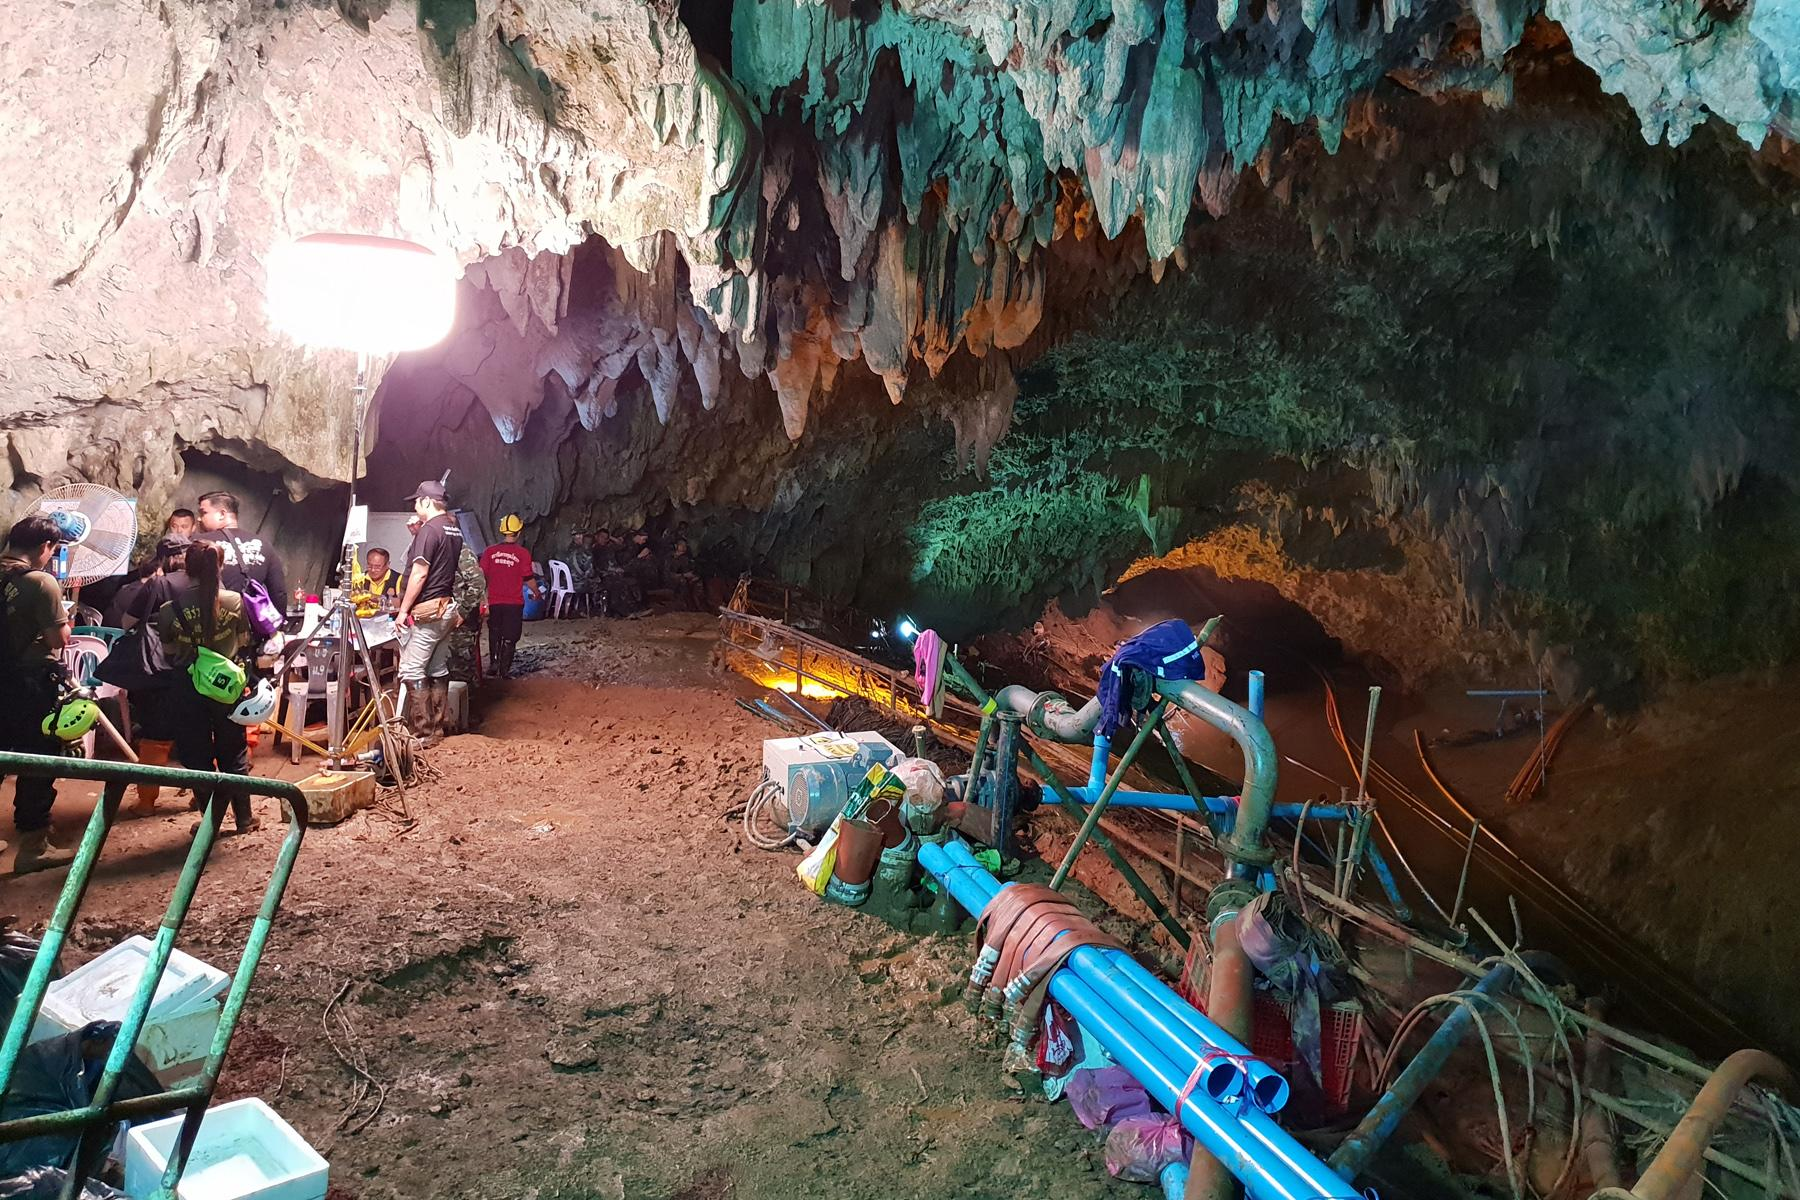 The Thai Cave Where 12 Boys Went Missing Is Now a Tourist Attraction and We Have Questions